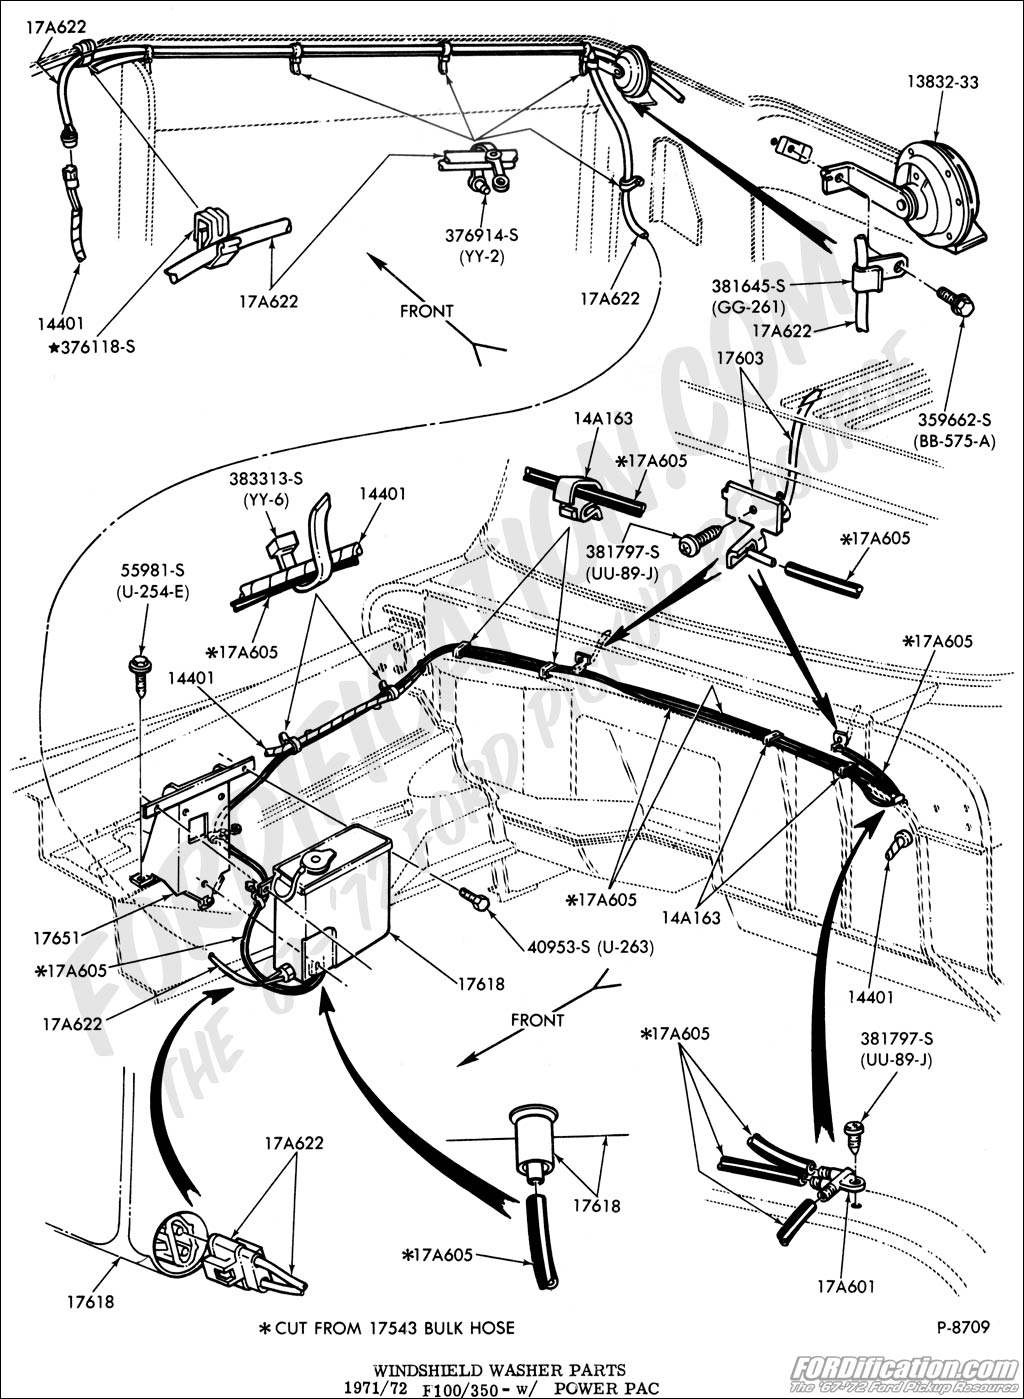 Ford Truck Drawing At Free For Personal Use 1969 F 250 Wiring Diagram 1024x1399 Technical Drawings And Schematics